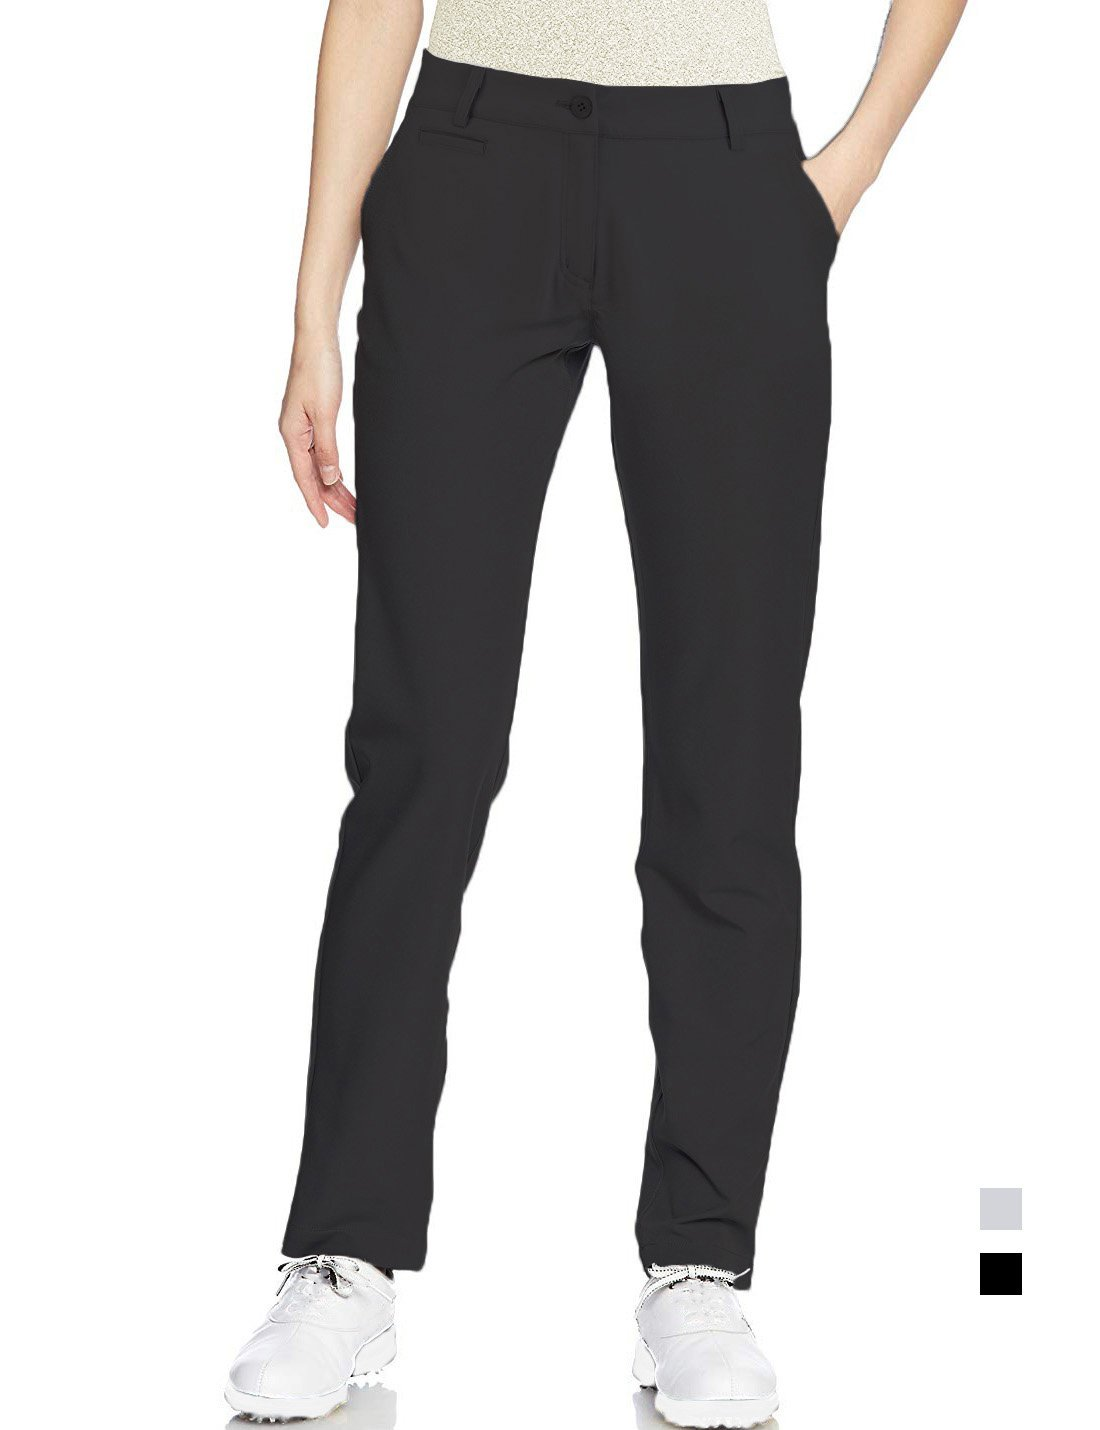 Golf Pants Women Long Stretch Tall Straight Leg Twill Work Chino Ladies Size 14 Black by Lesmart